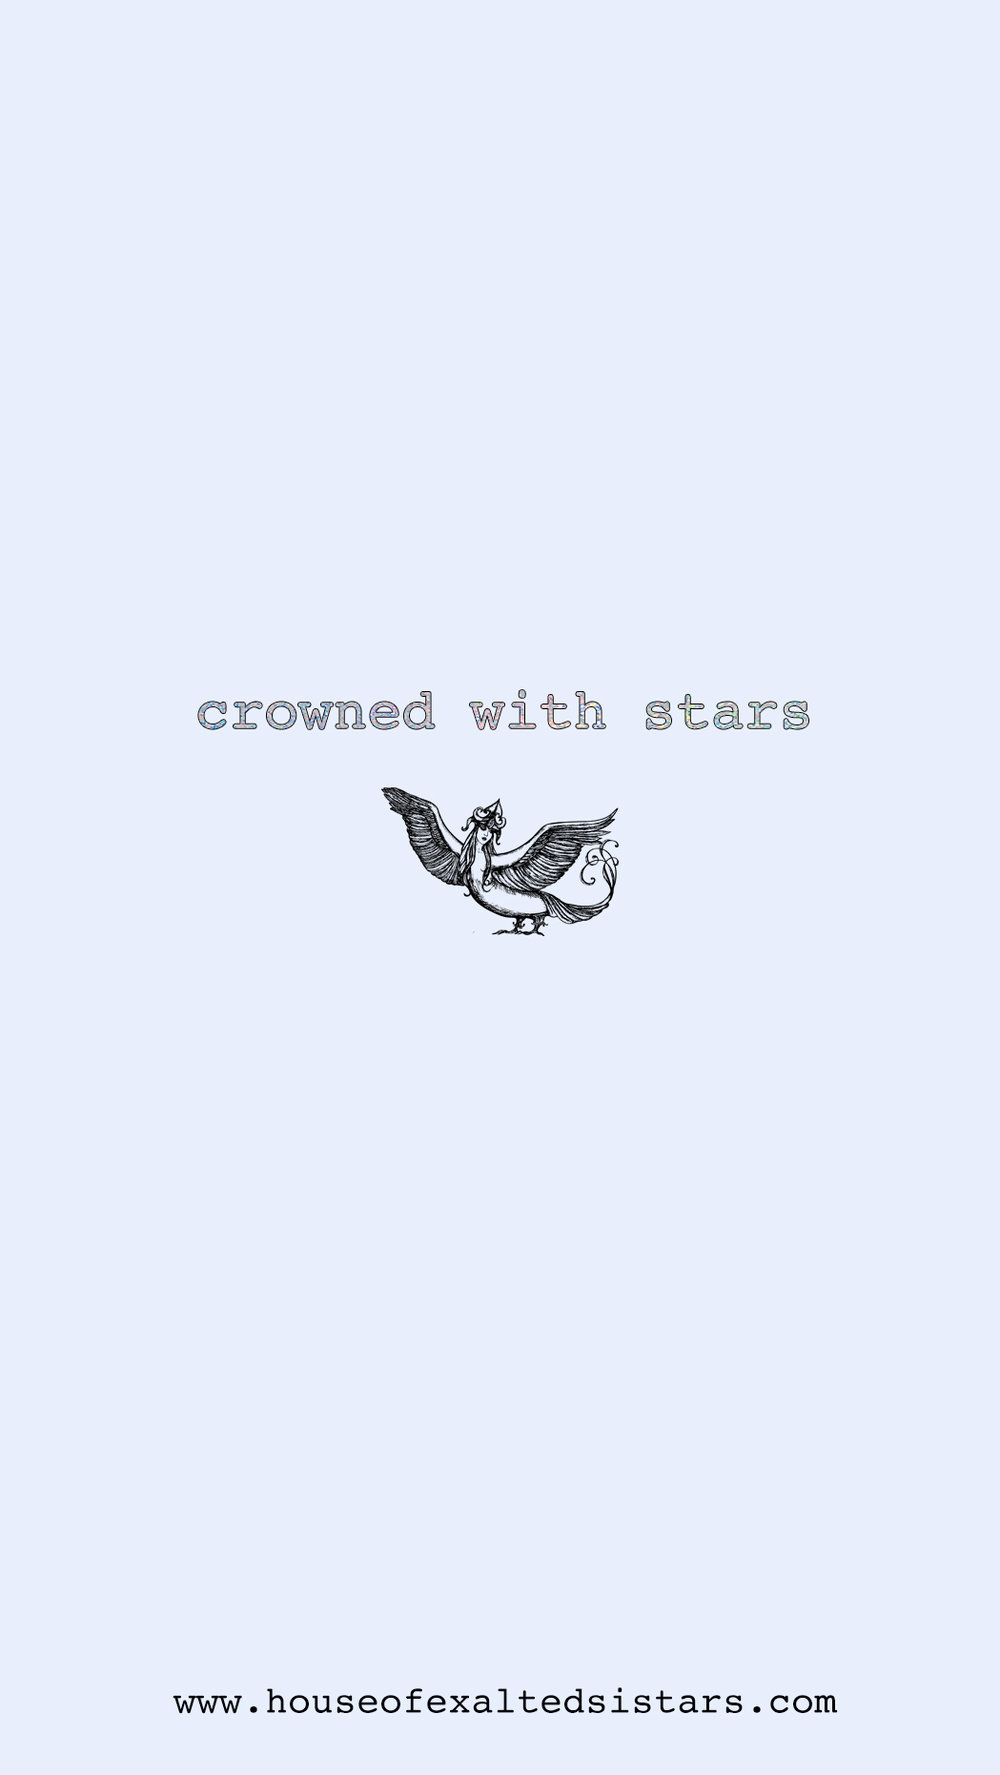 crowned with stars phone.jpg